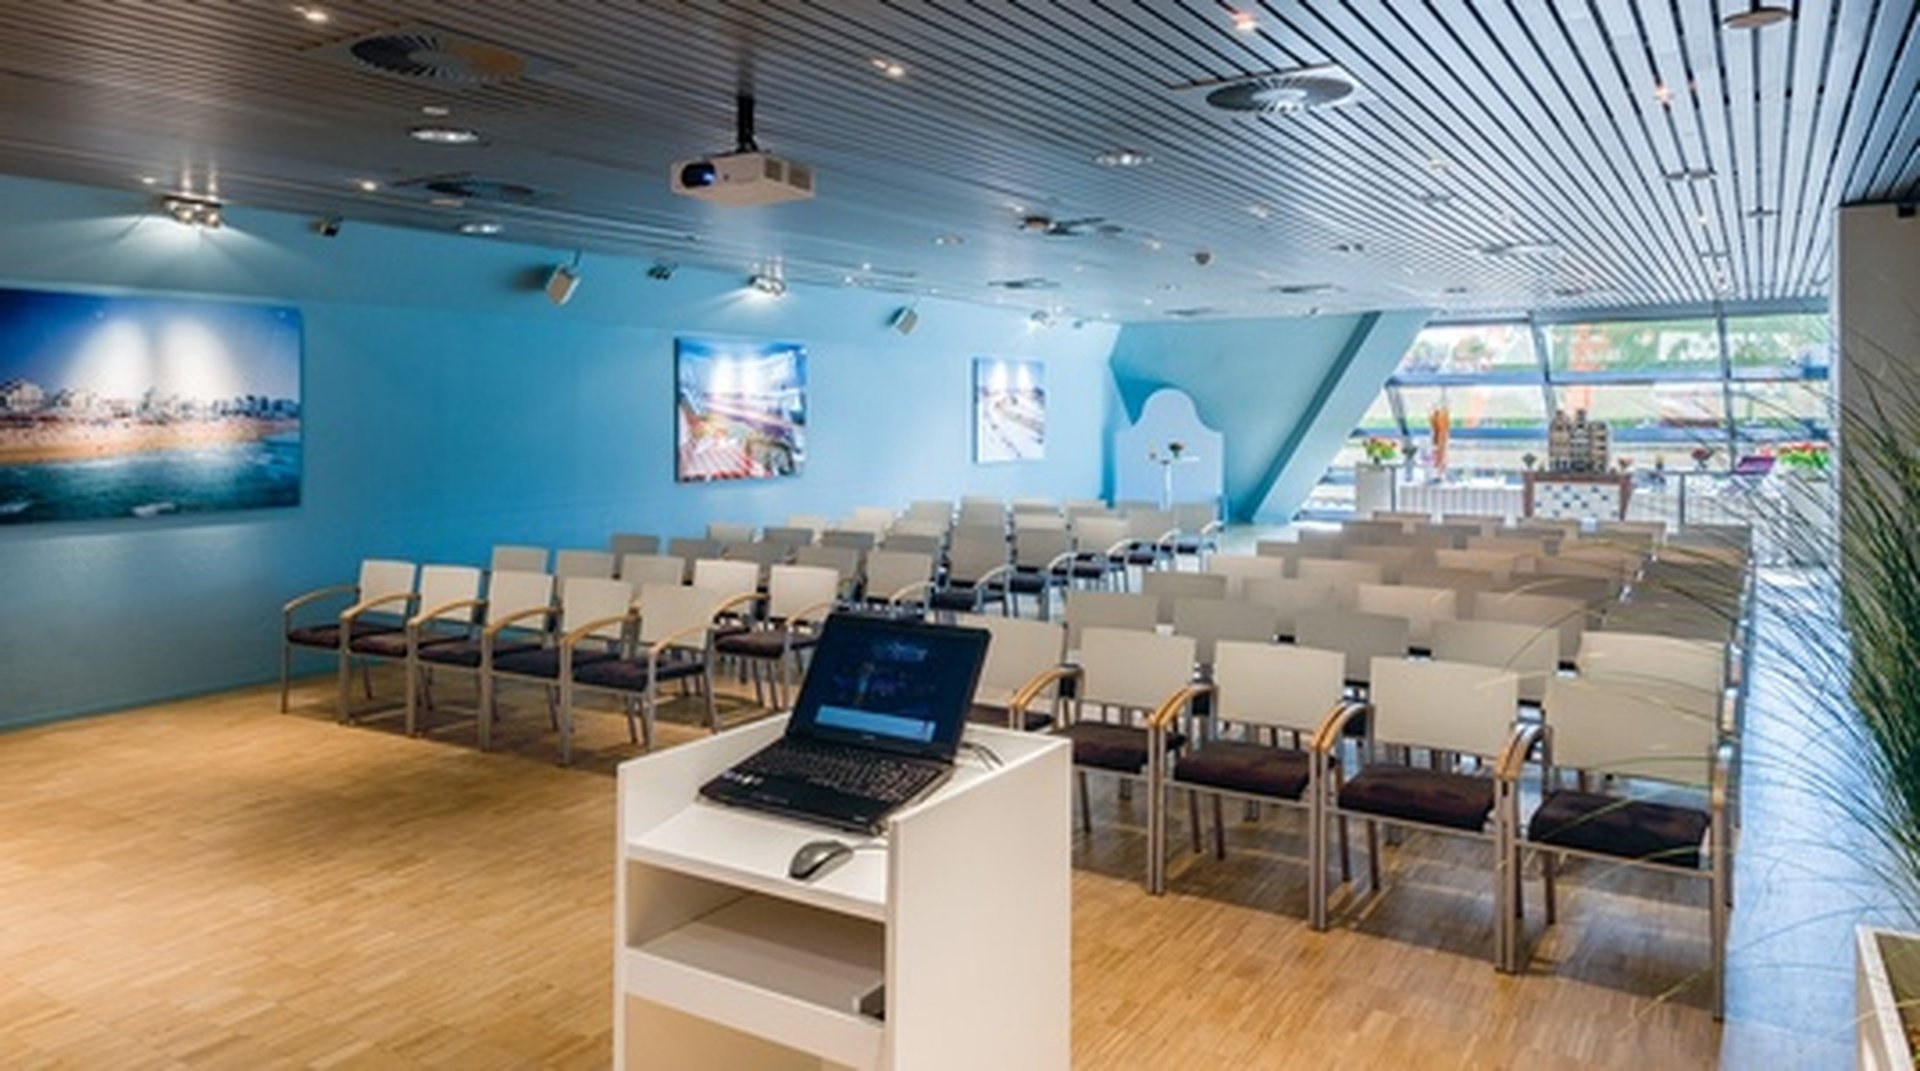 The Hague training rooms Salle de réunion Madurodam Boom van der Starp room image 0